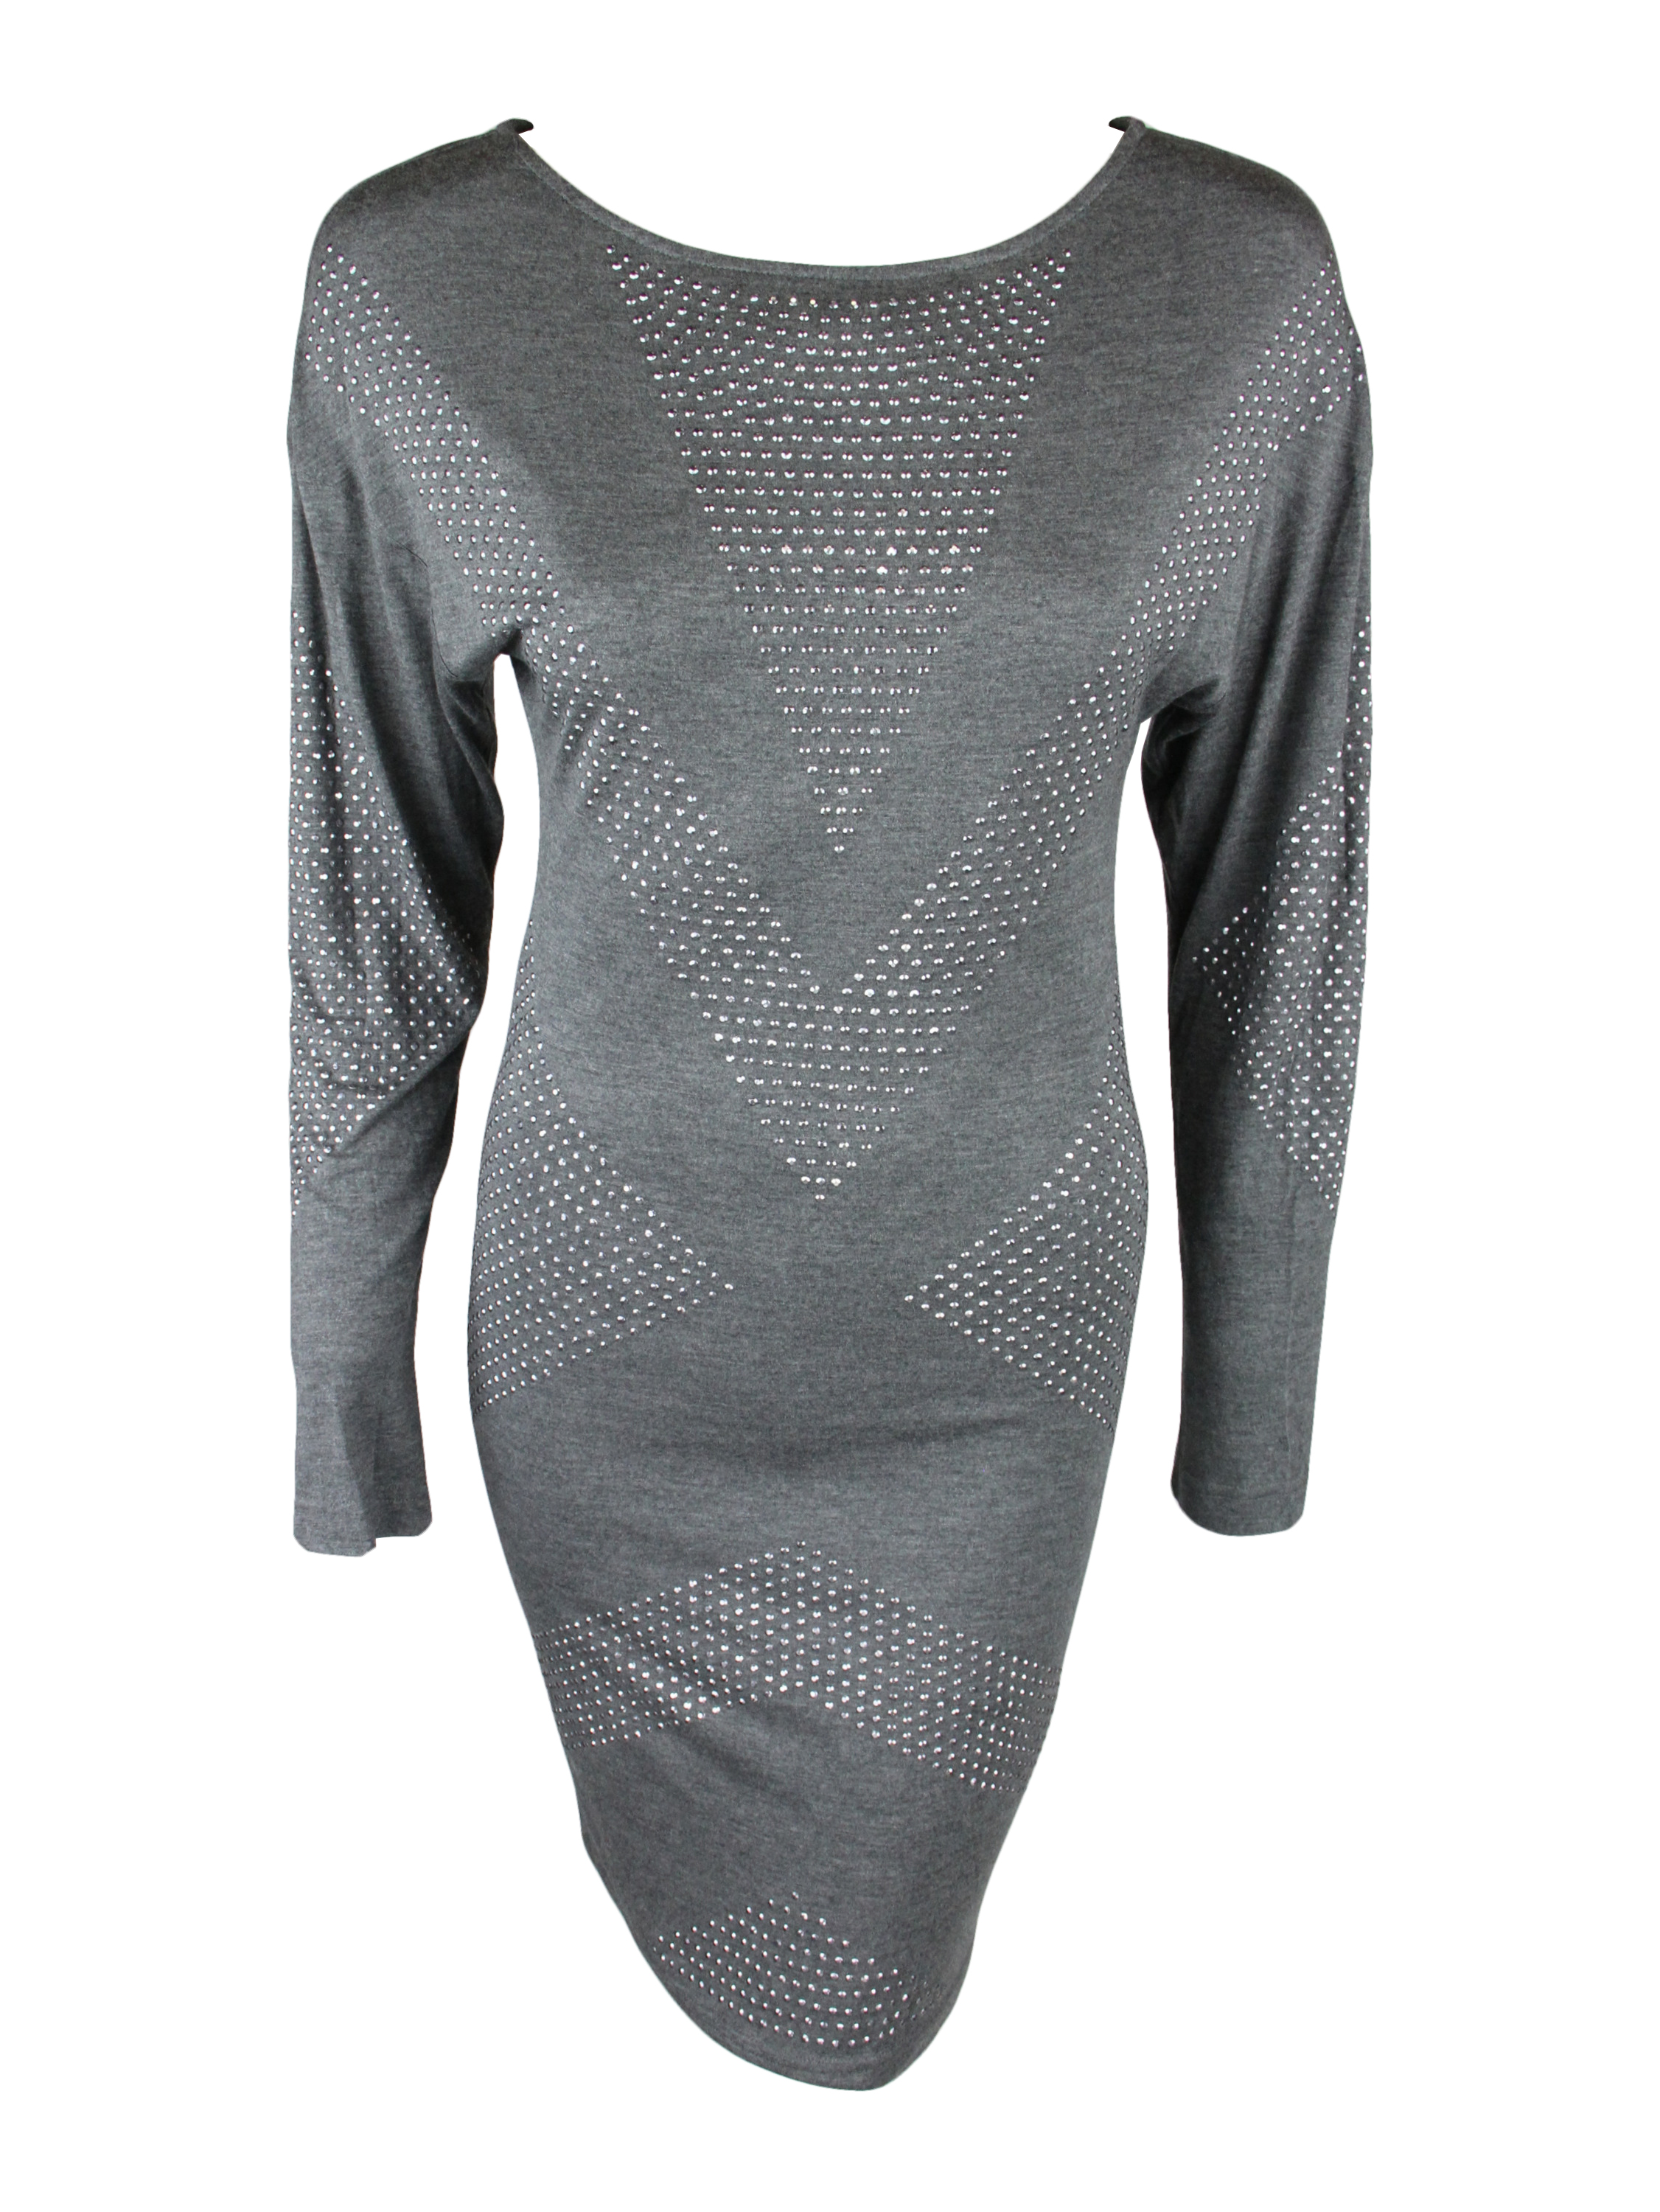 Haute Hippie Womens Charcoal Heather Grey Studded L s Dress XS $396